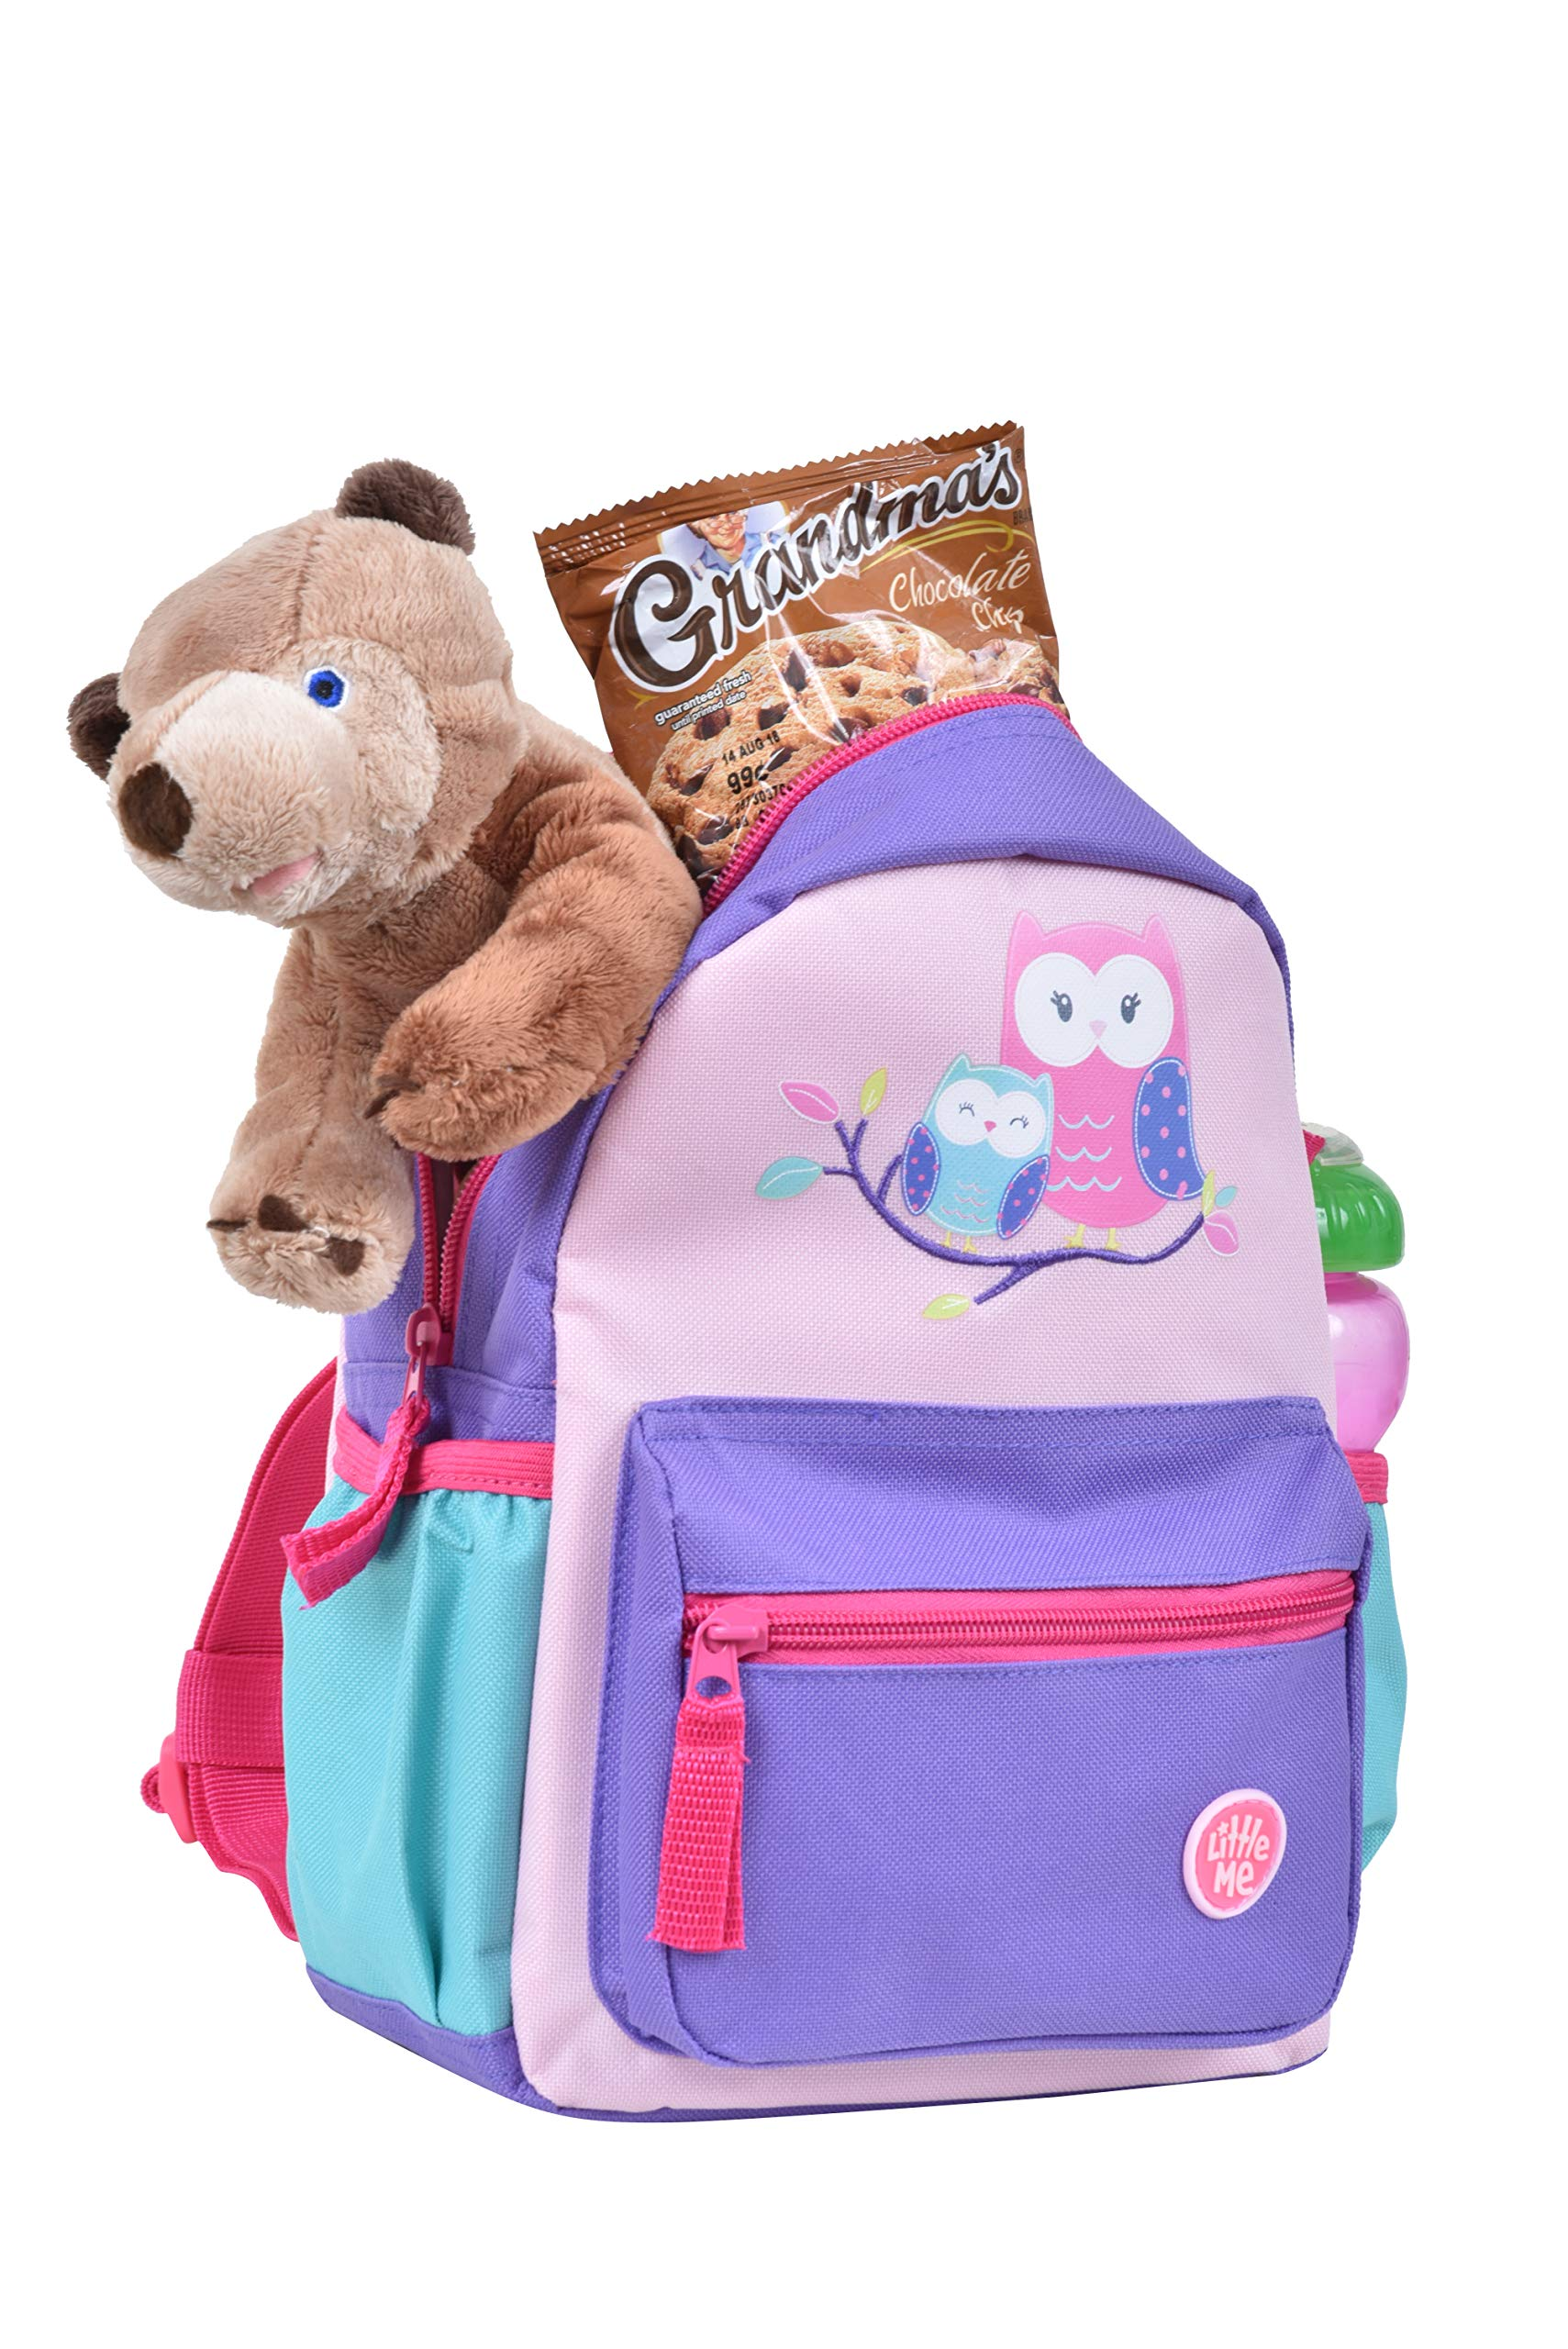 Little Me Owl Backpack with Safety Harness Leash, Child Baby Toddler Travel